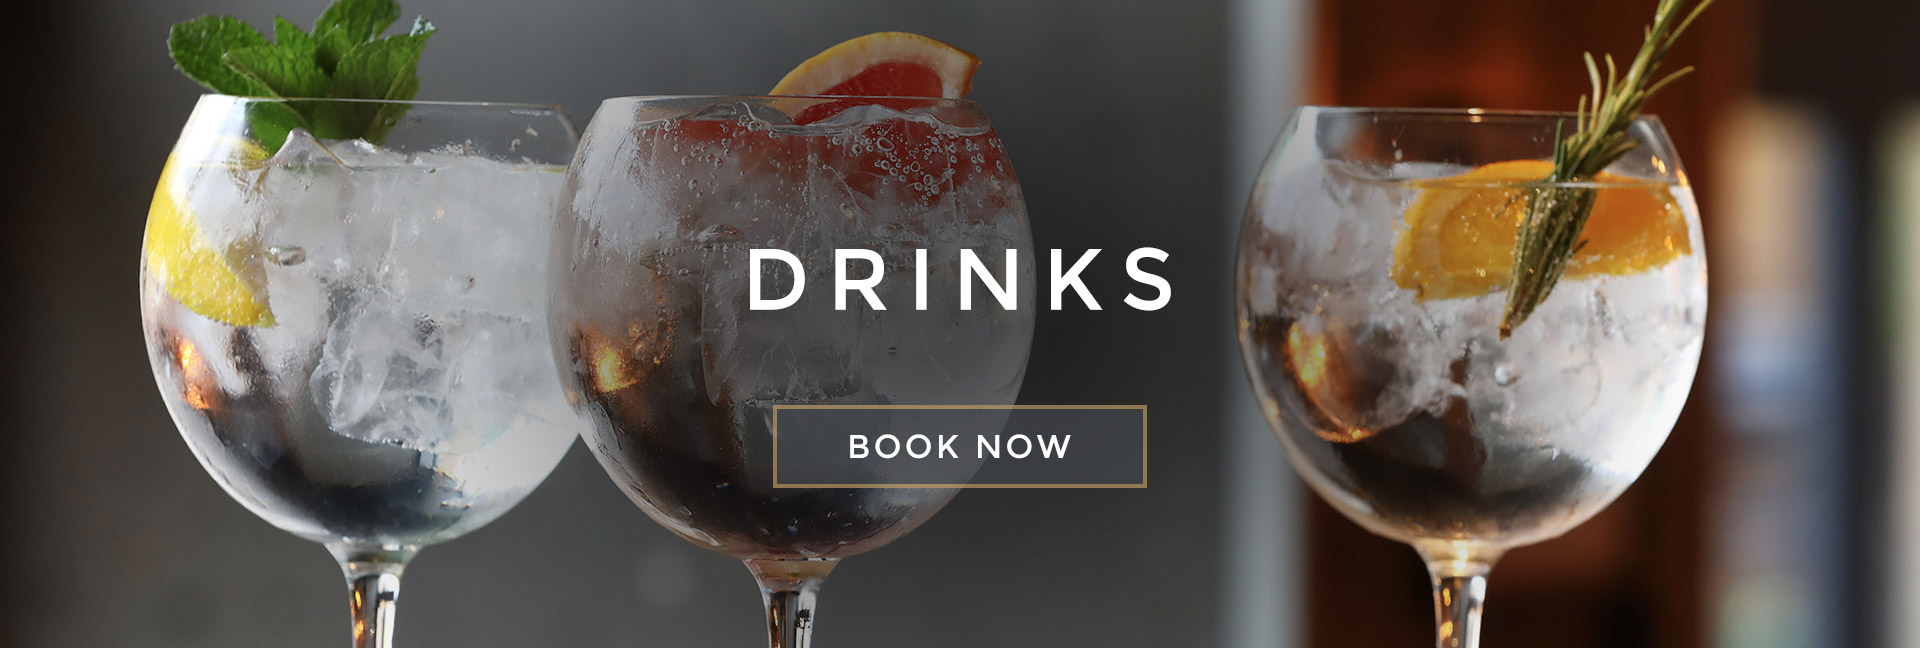 Drinks at All Bar One Trafford Centre - Book your table